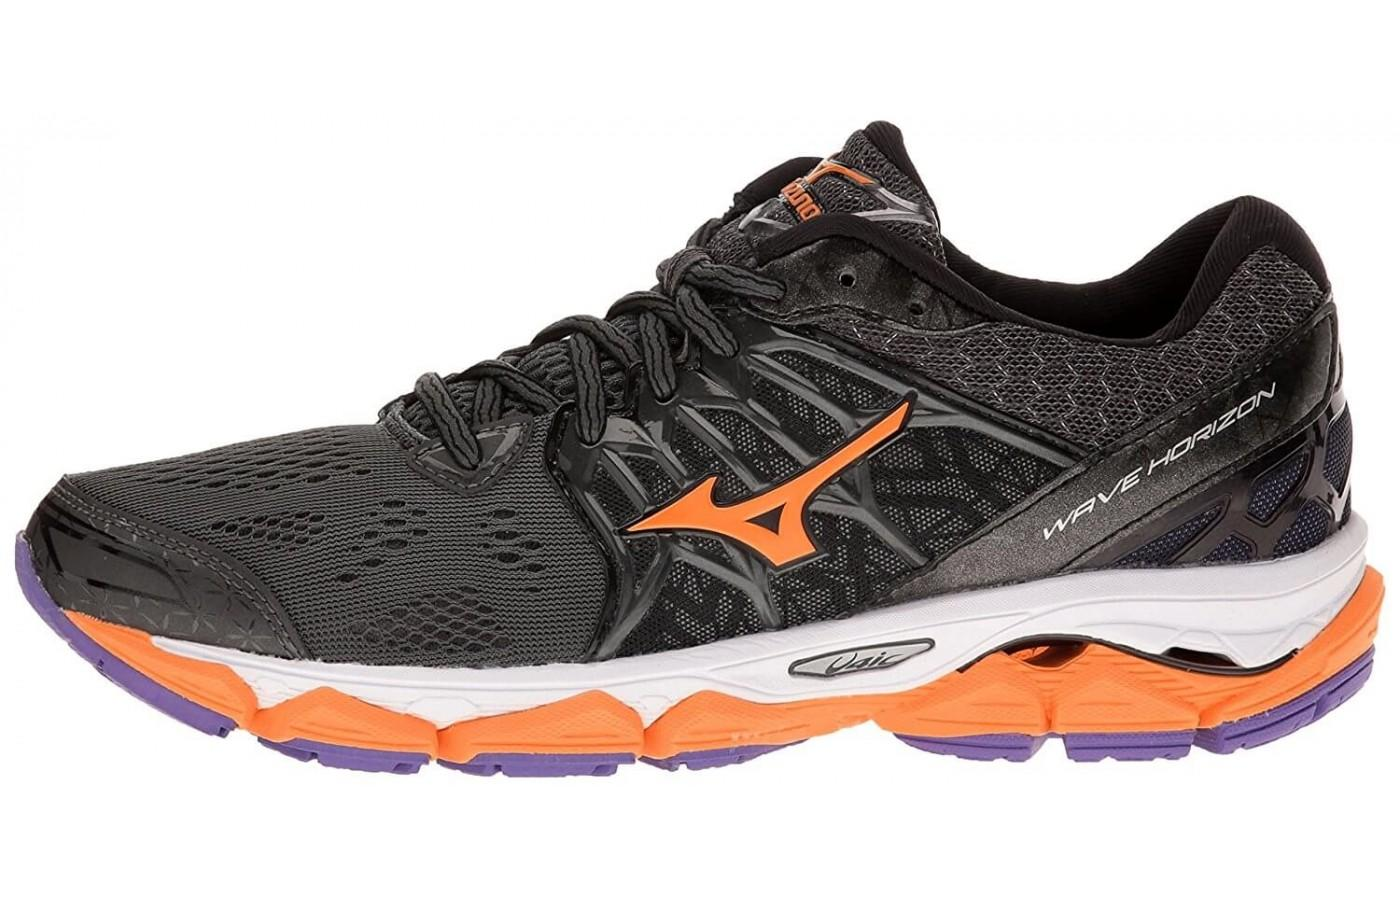 The Mizuno Wave Horizon features an Articulated U4icX heel wedge for cushioning and shock absorption